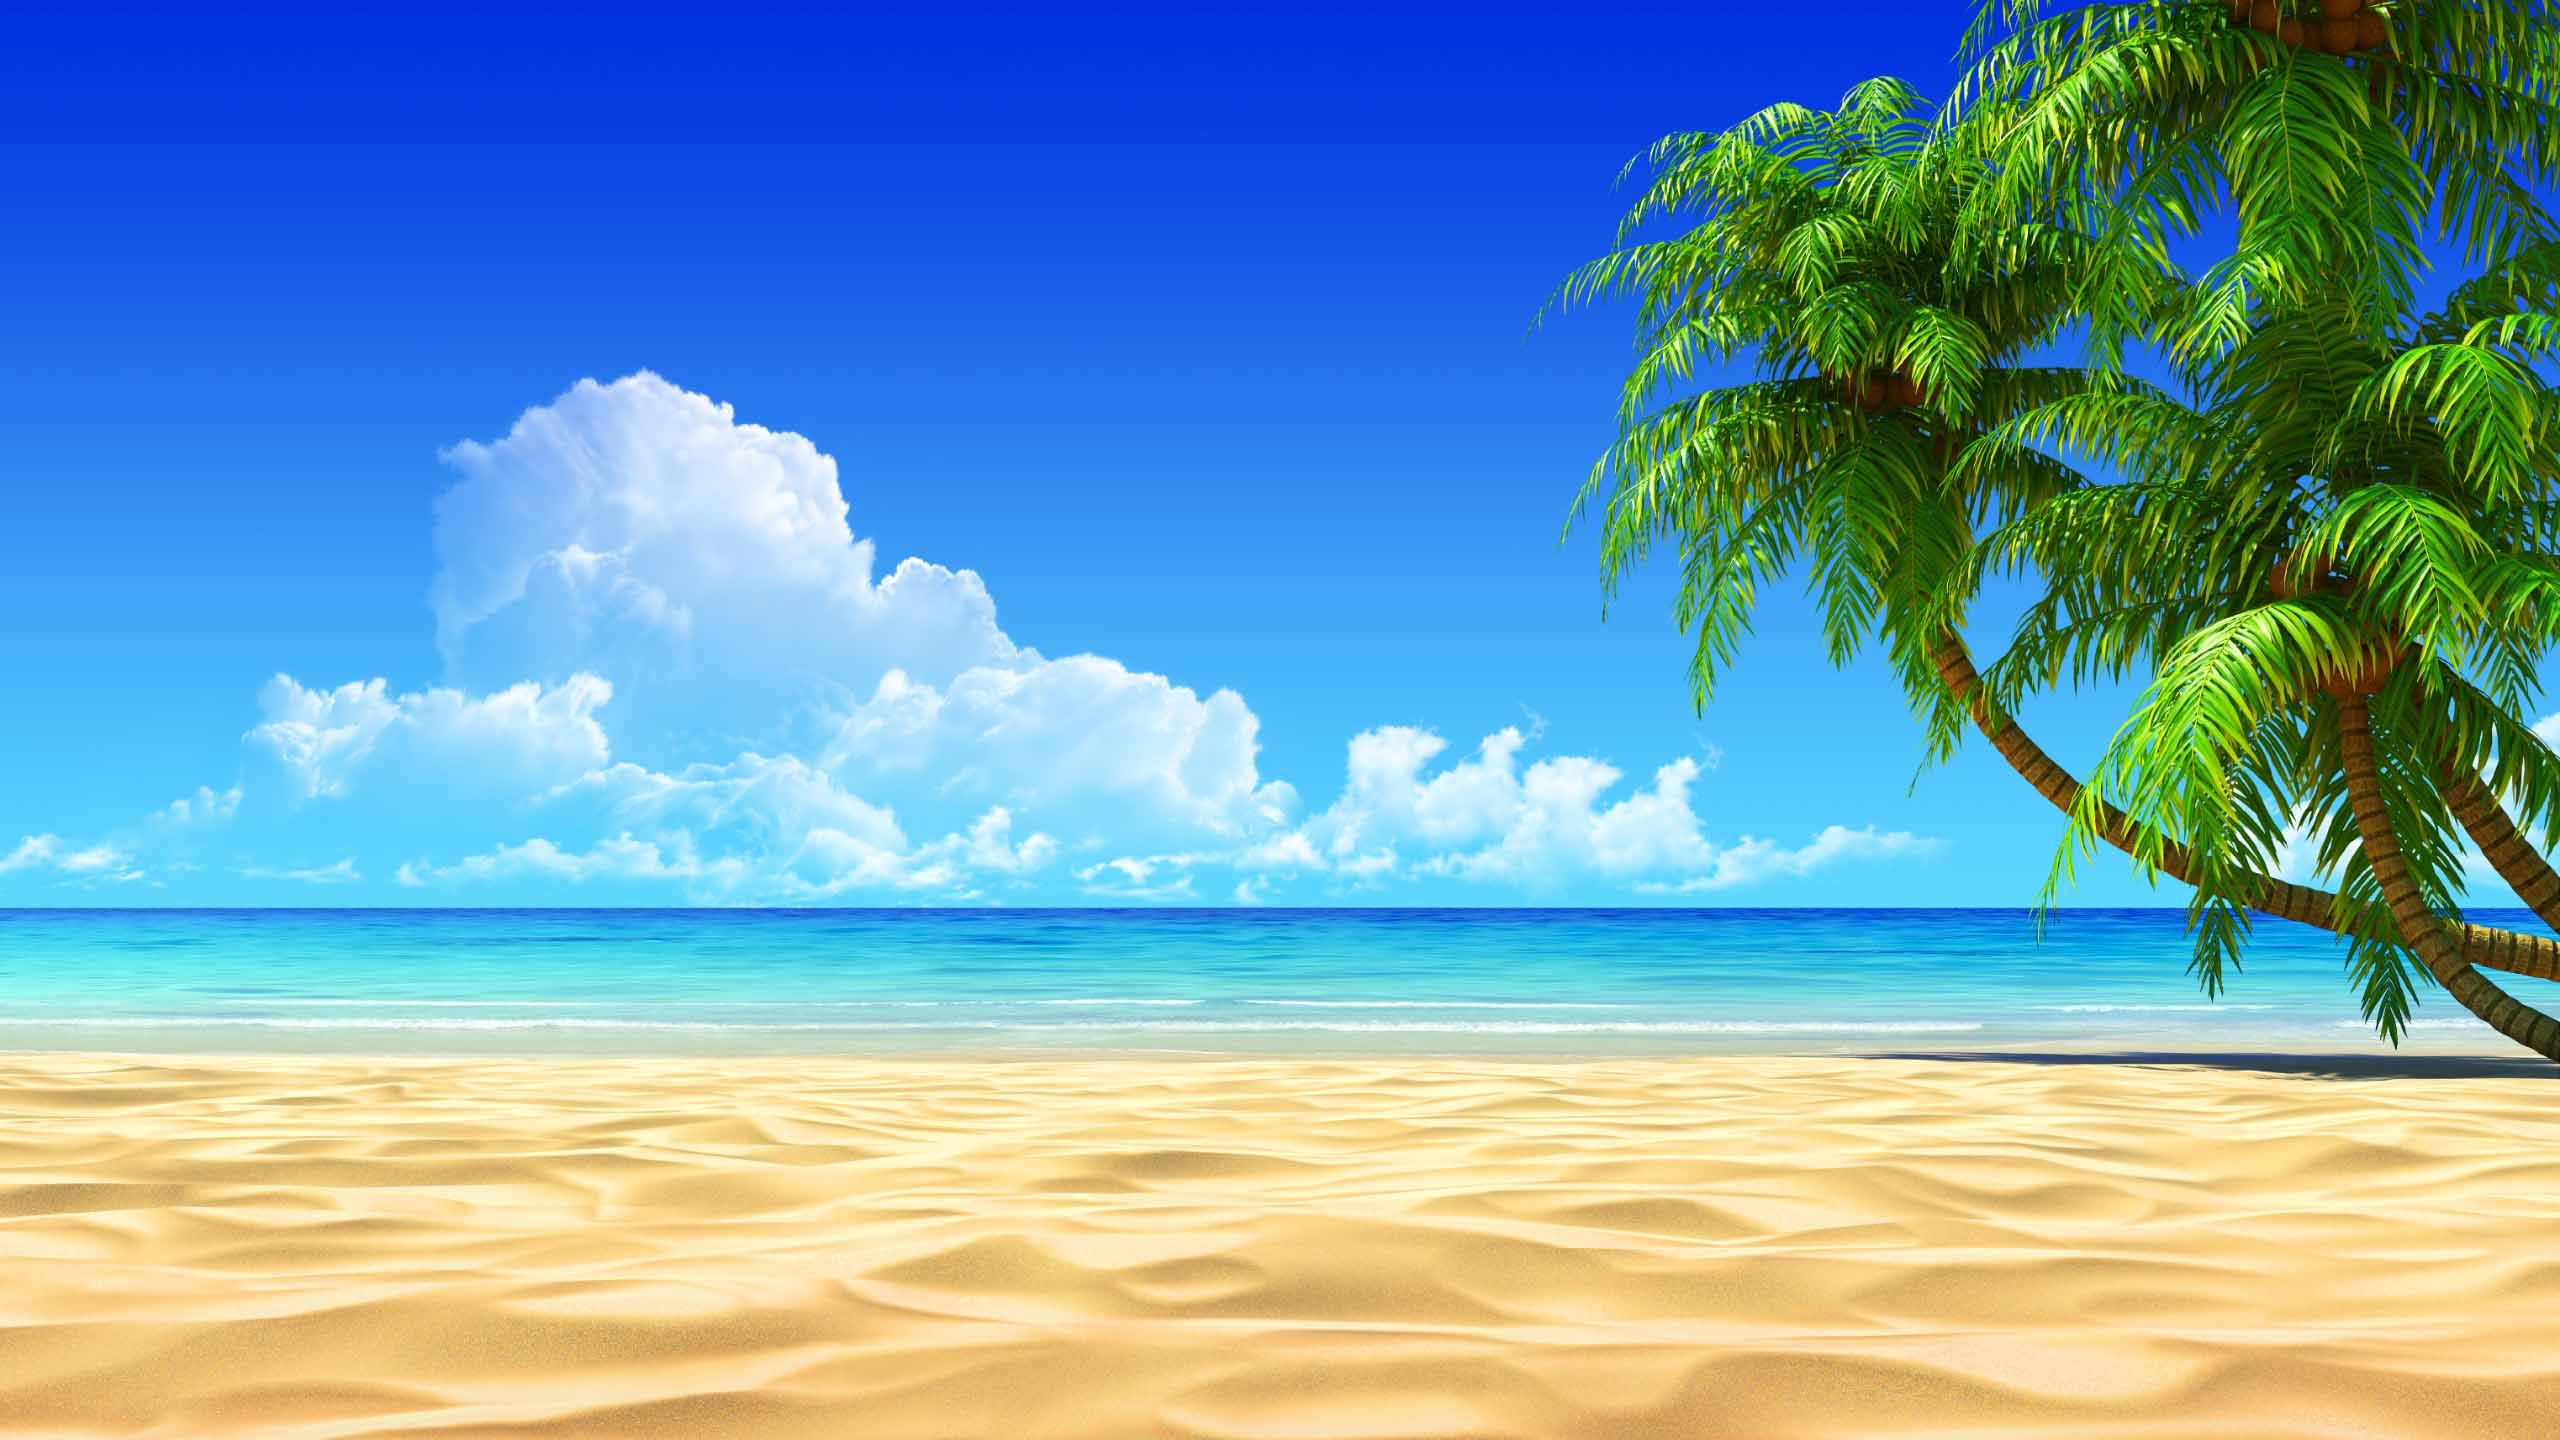 beach wallpaper A1